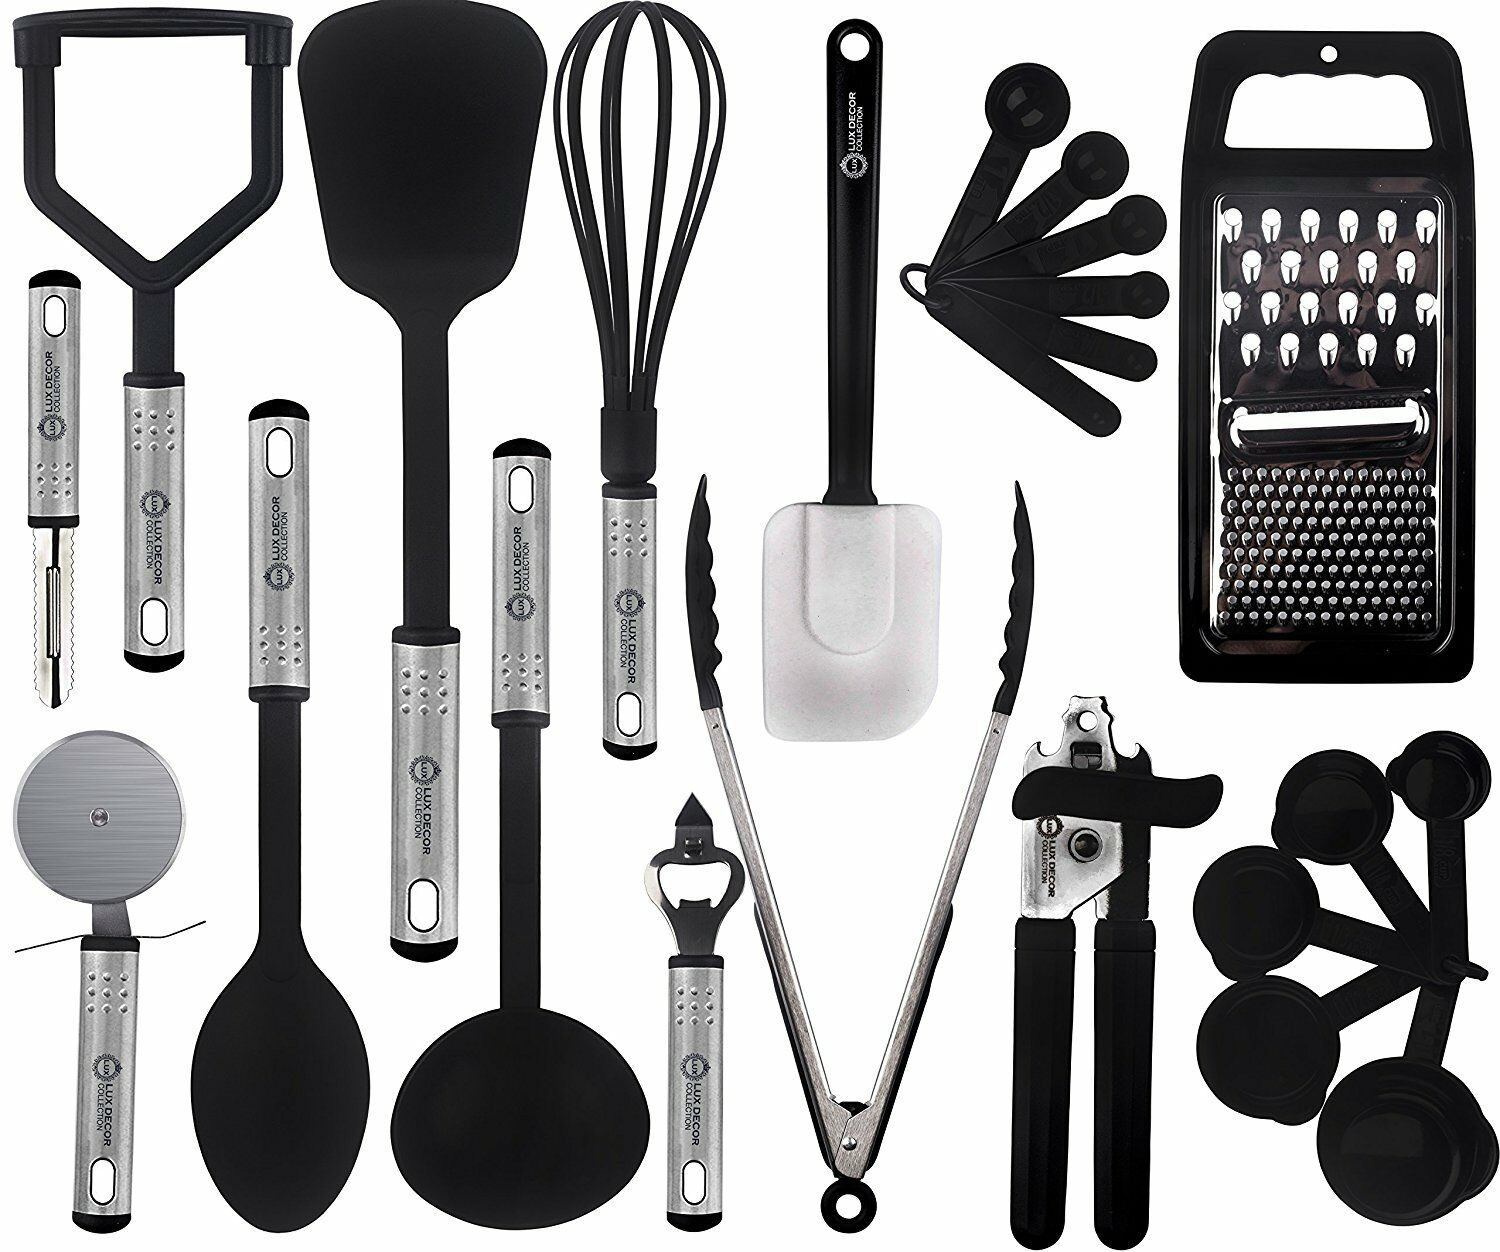 Kitchen Utensils Set 23 Piece Nylon Utinsels Stainless Steel Cooking Utensil Set